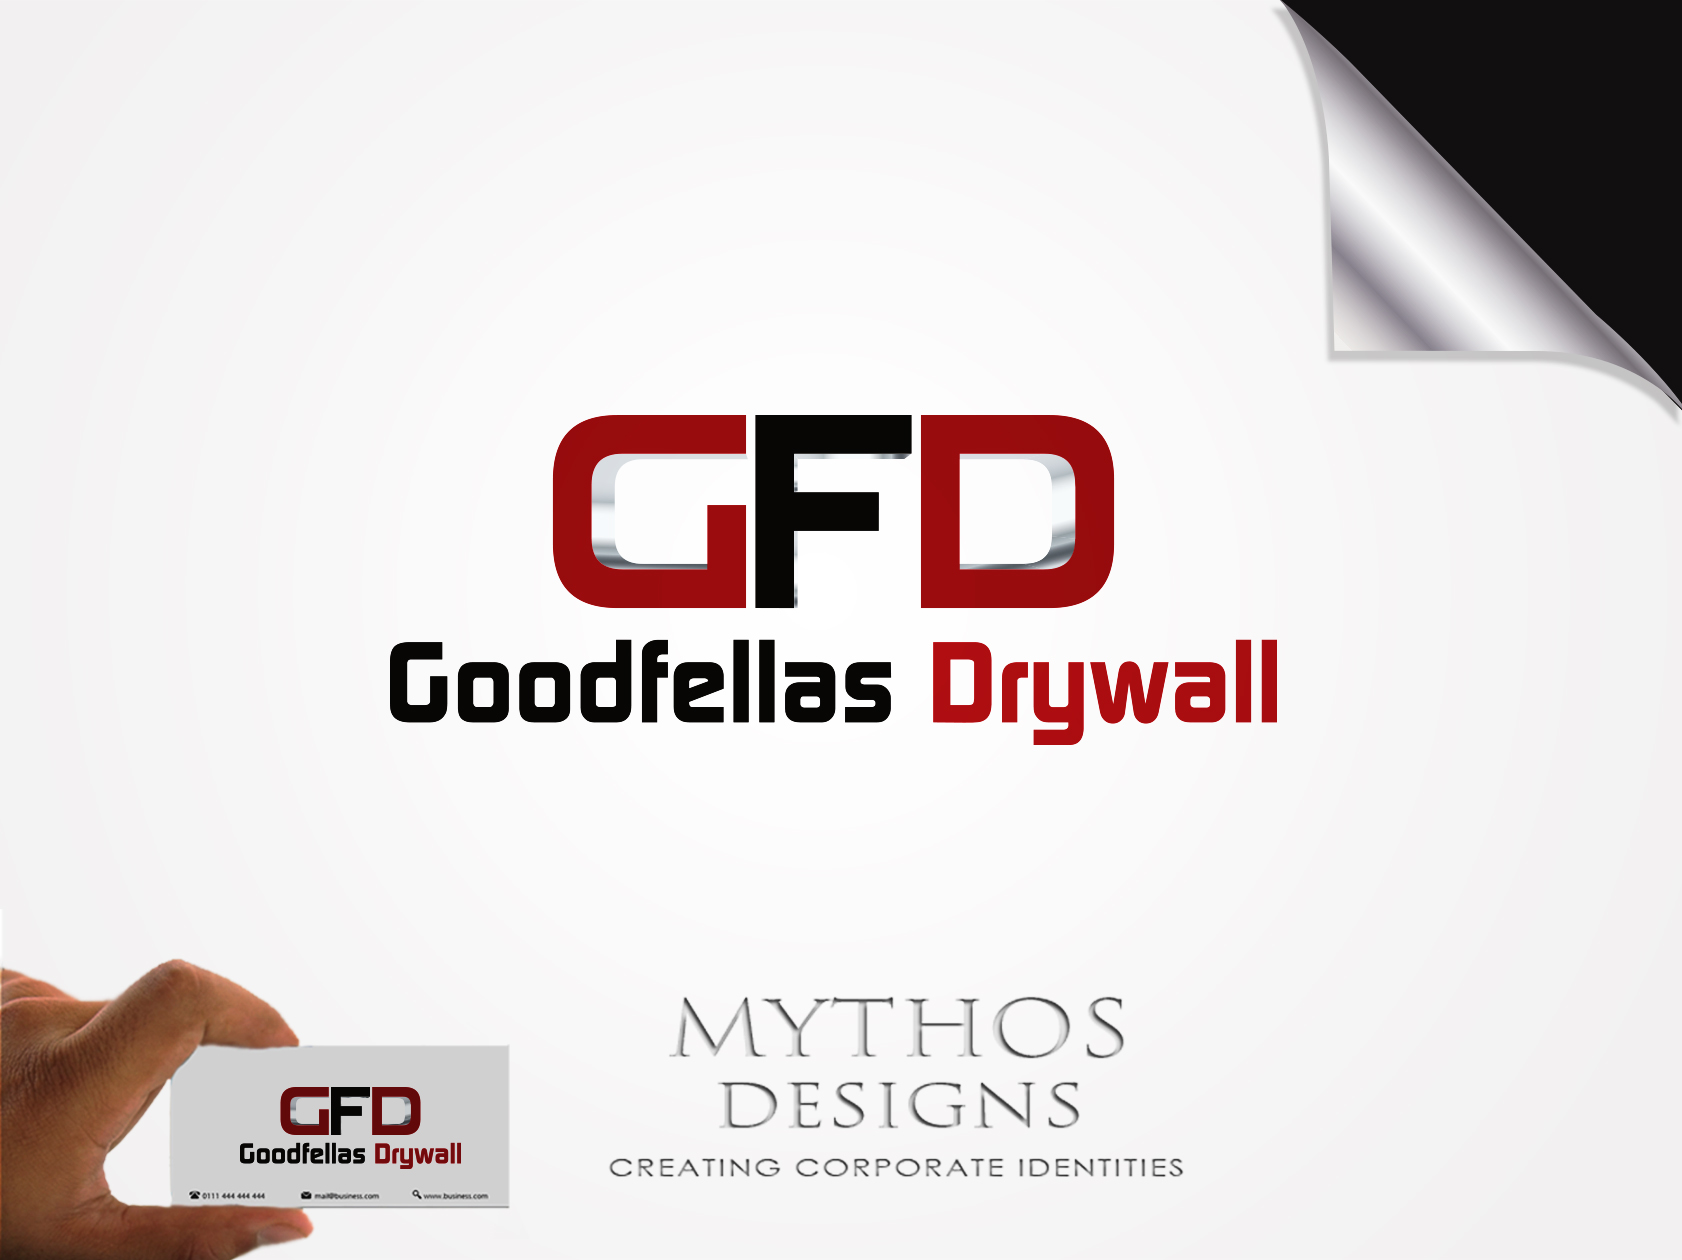 Logo Design by Mythos Designs - Entry No. 184 in the Logo Design Contest Creative Logo Design for Goodfellas Drywall.